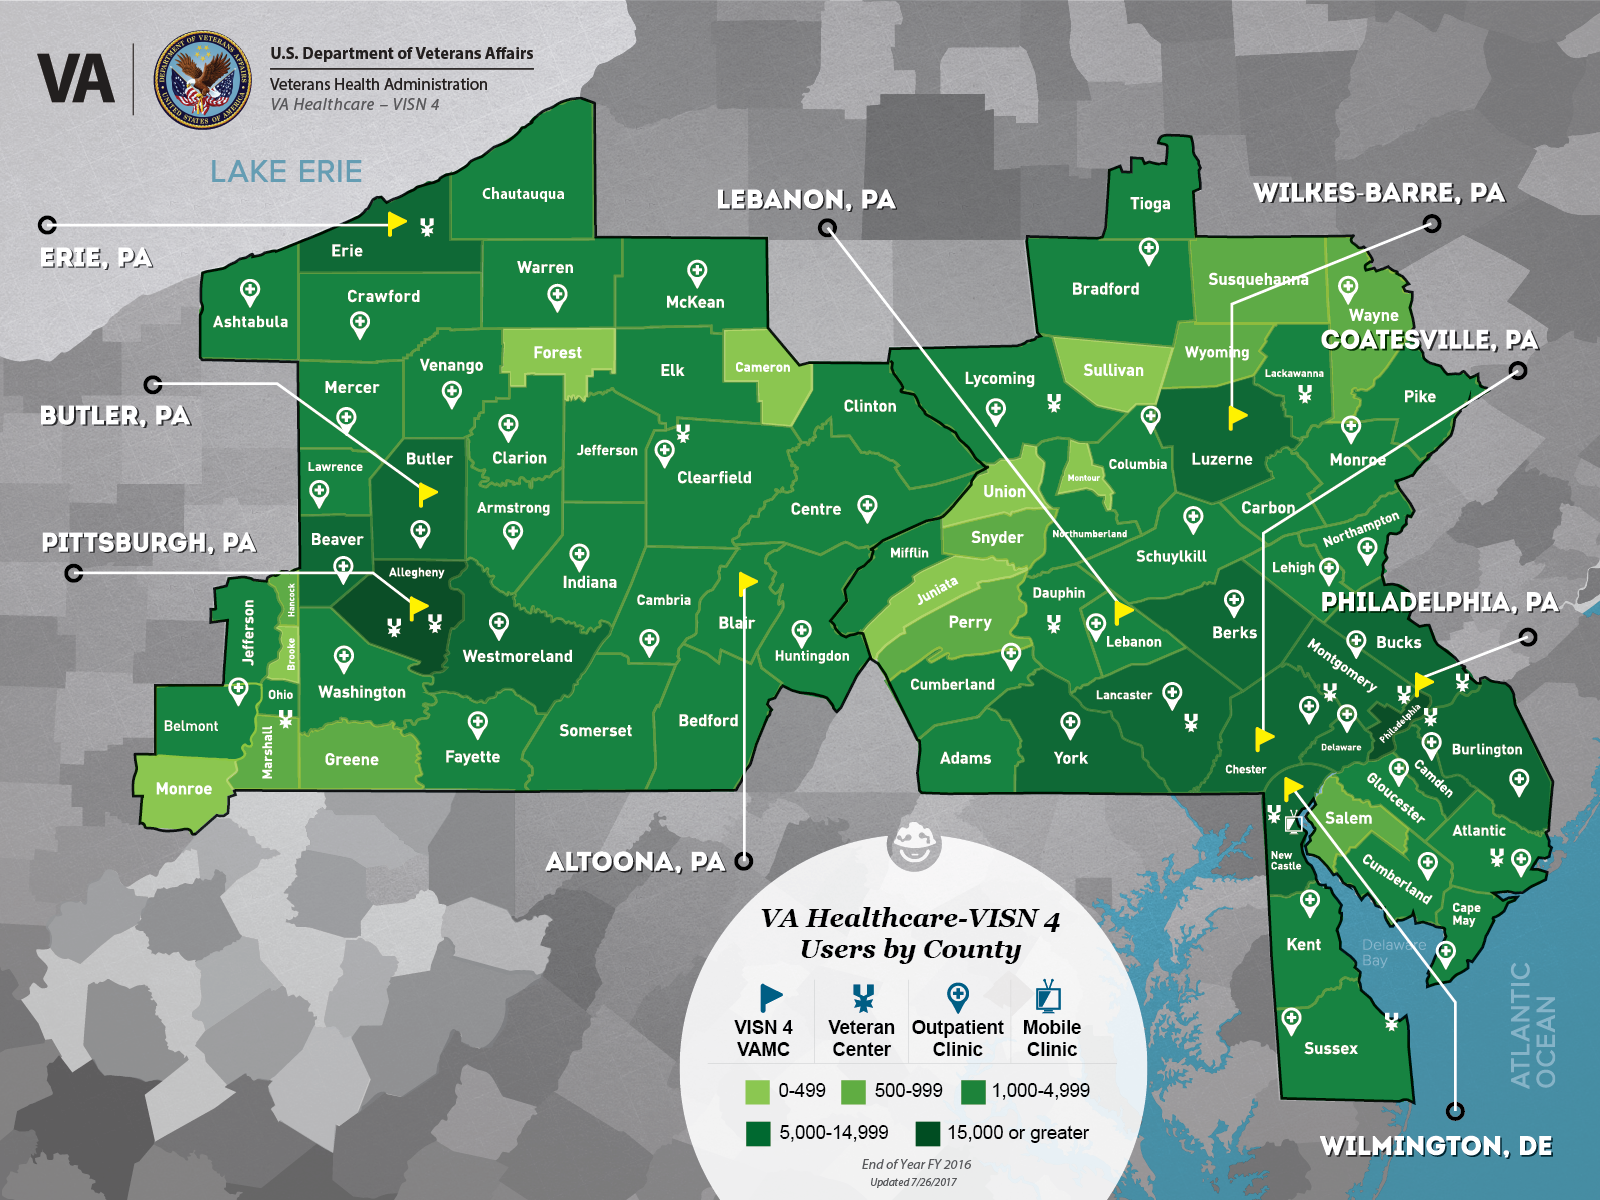 Map Of Ohio West Virginia And Pennsylvania.Va Healthcare Visn 4 Users By County